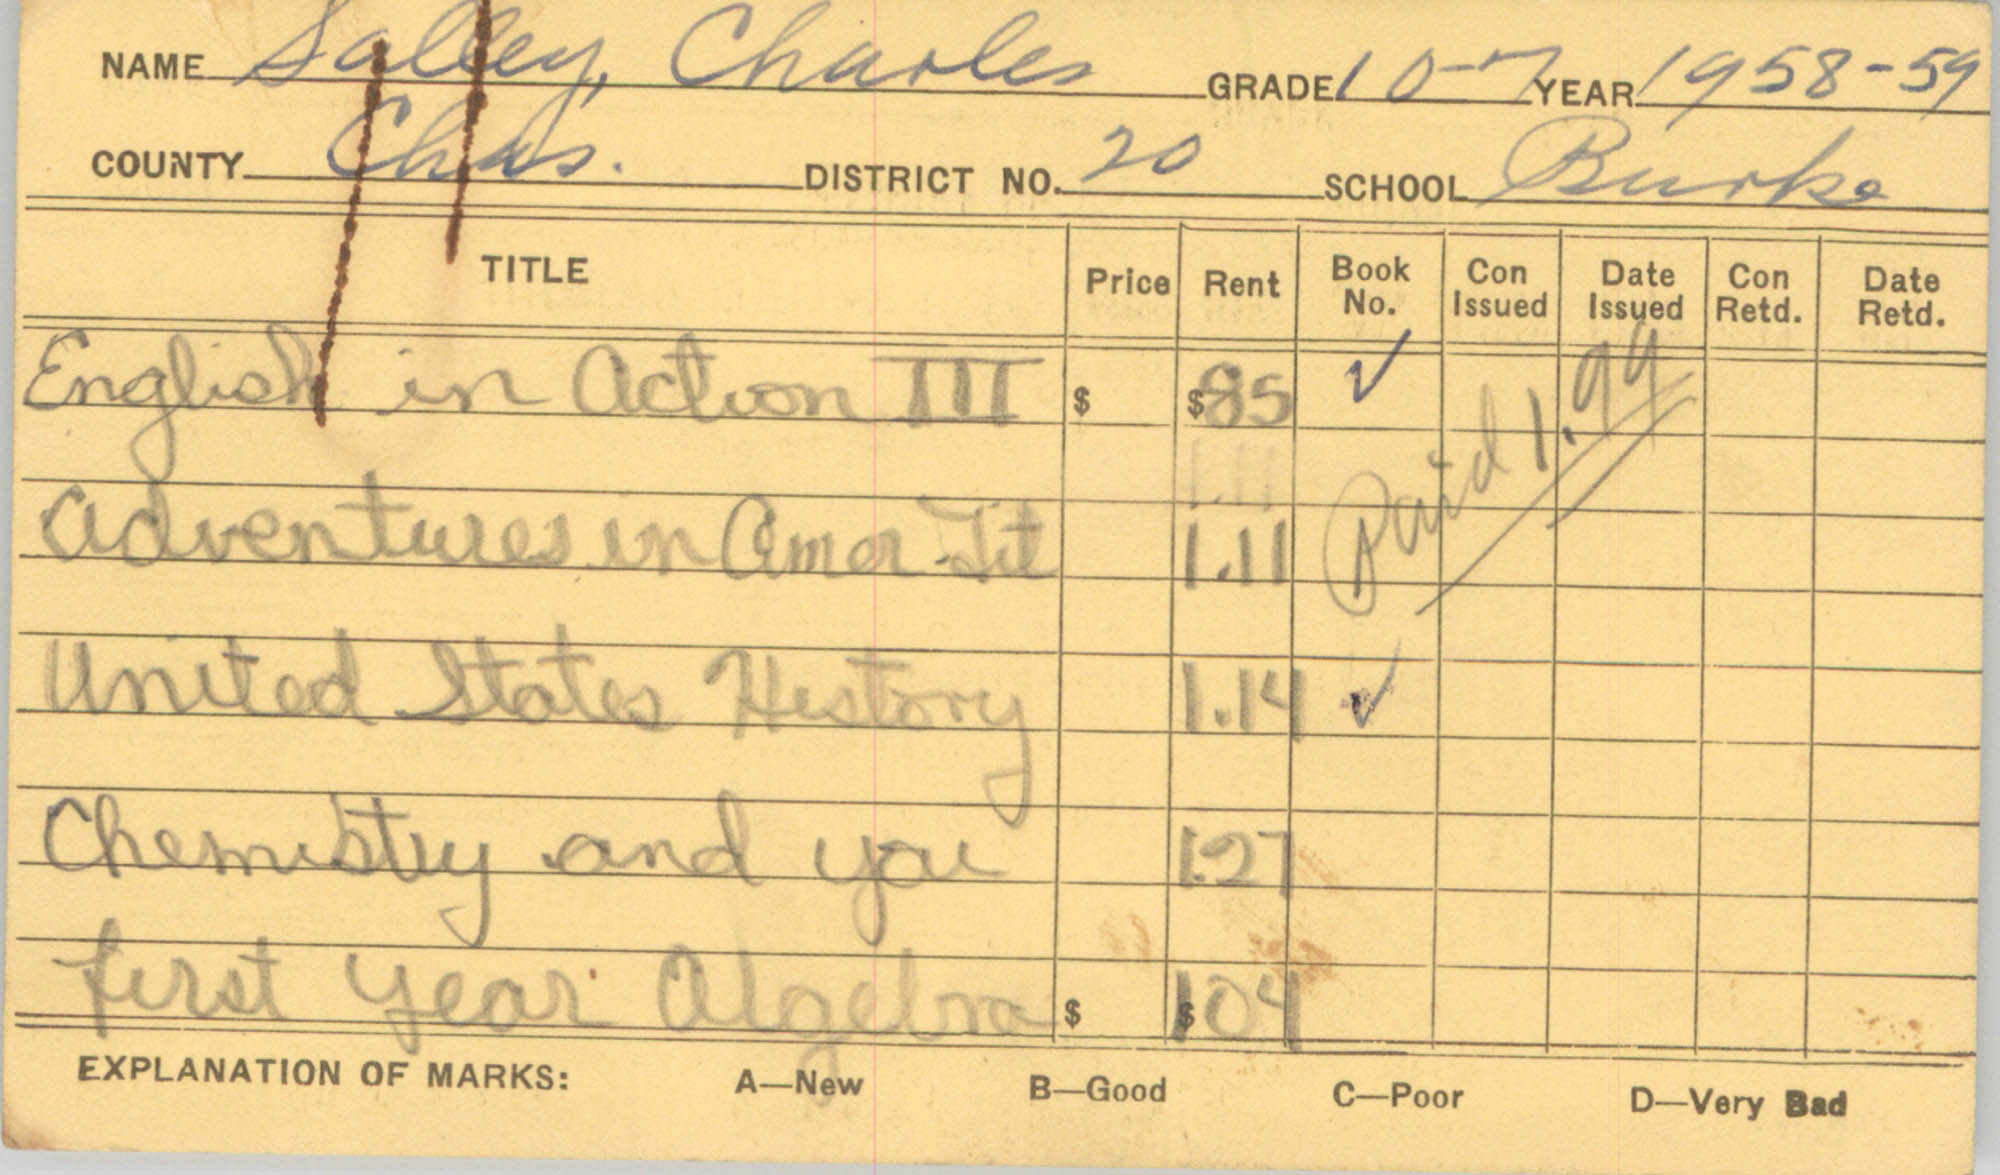 State of South Carolina State School Book Commission Pupil's Textbook Record Cards, Back Card 2